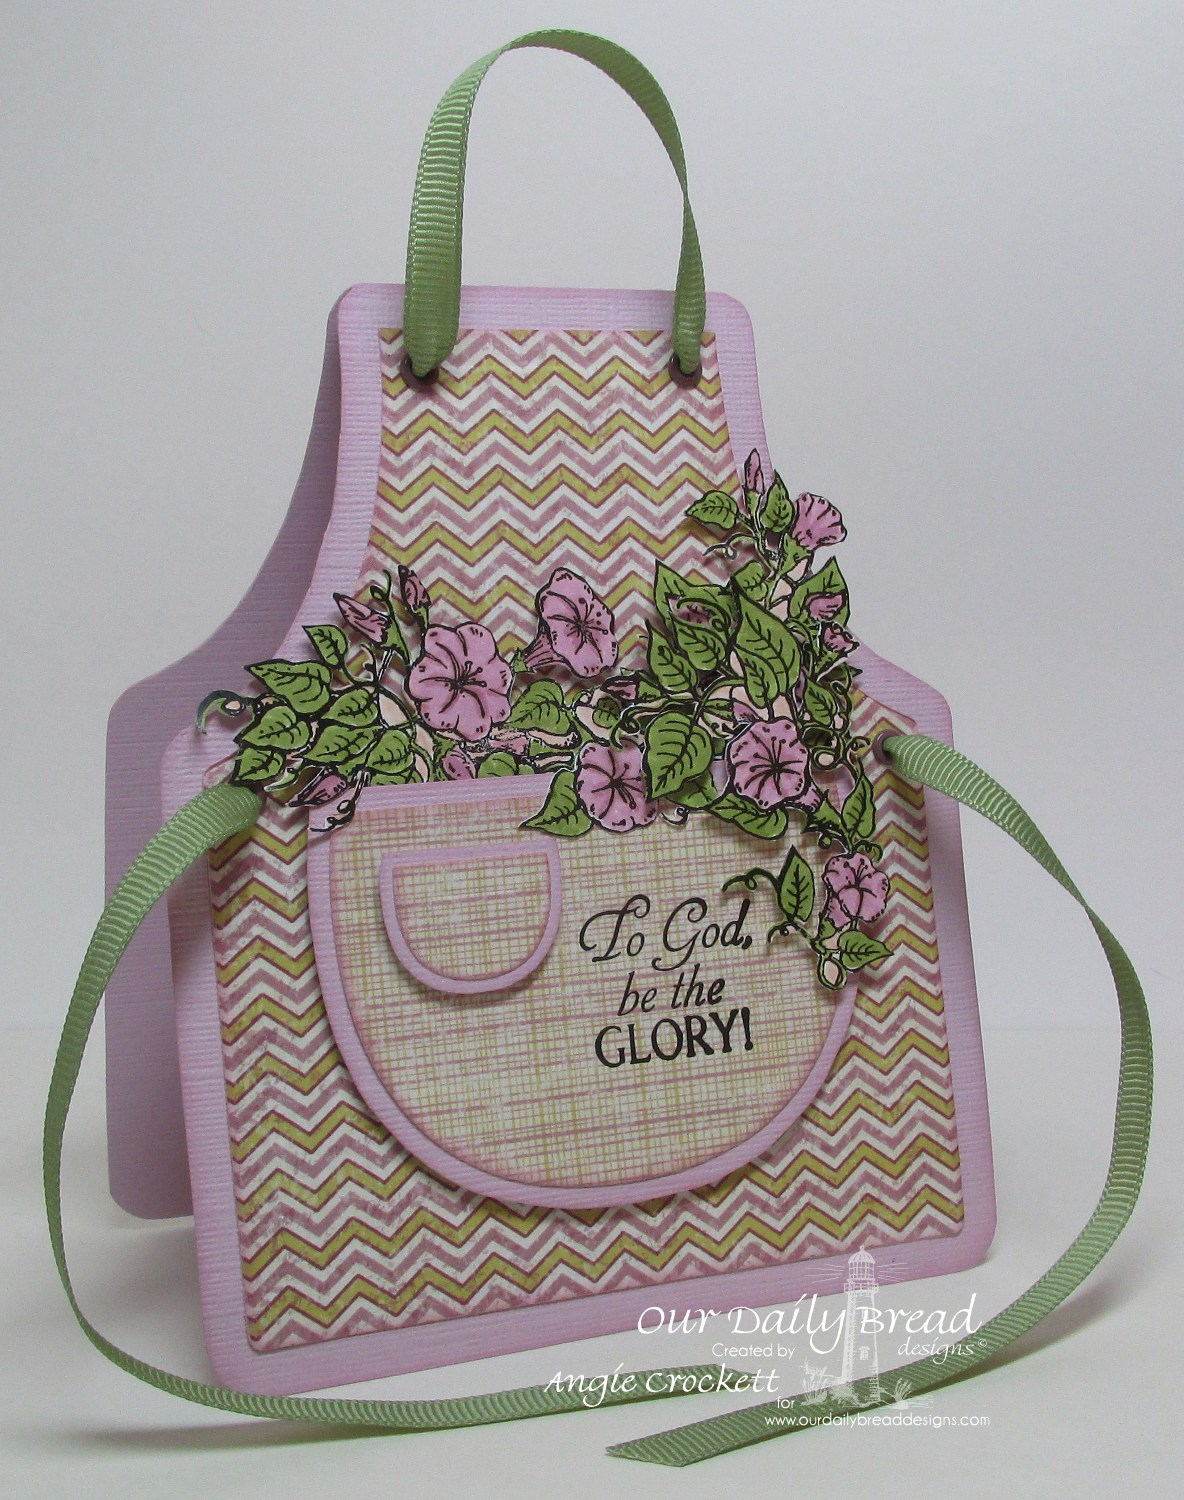 Stamps - Our Daily Bread Designs Glory, ODBD Custom Apron and Tools Dies, ODBD Rustic Beauty Paper Collection